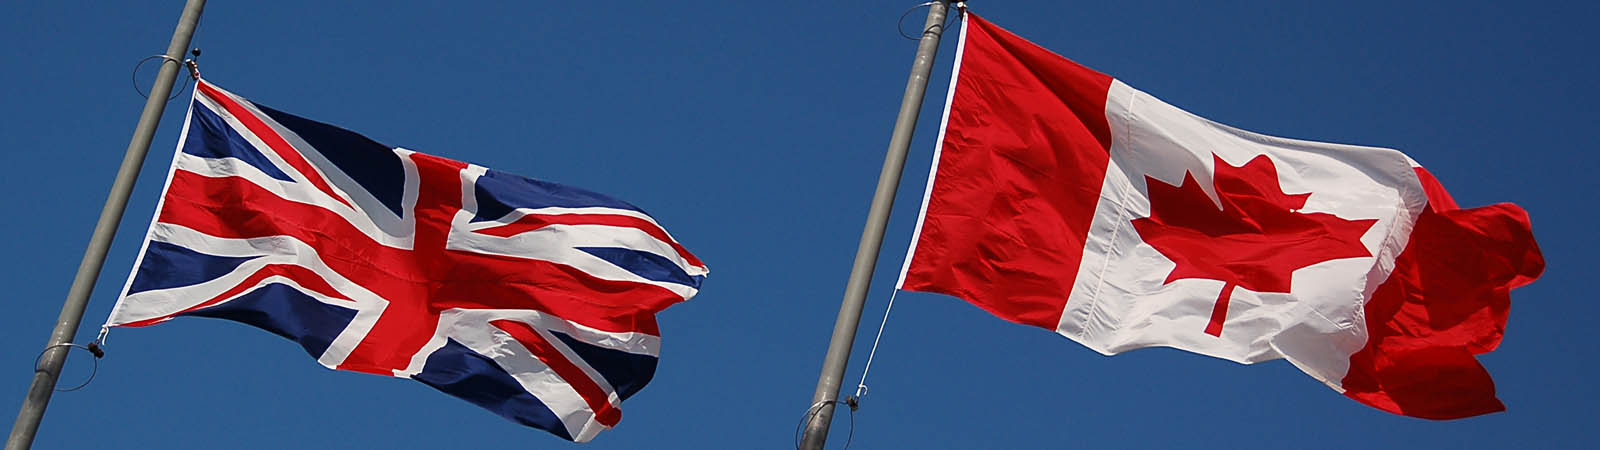 Union Jack and Canadian flags